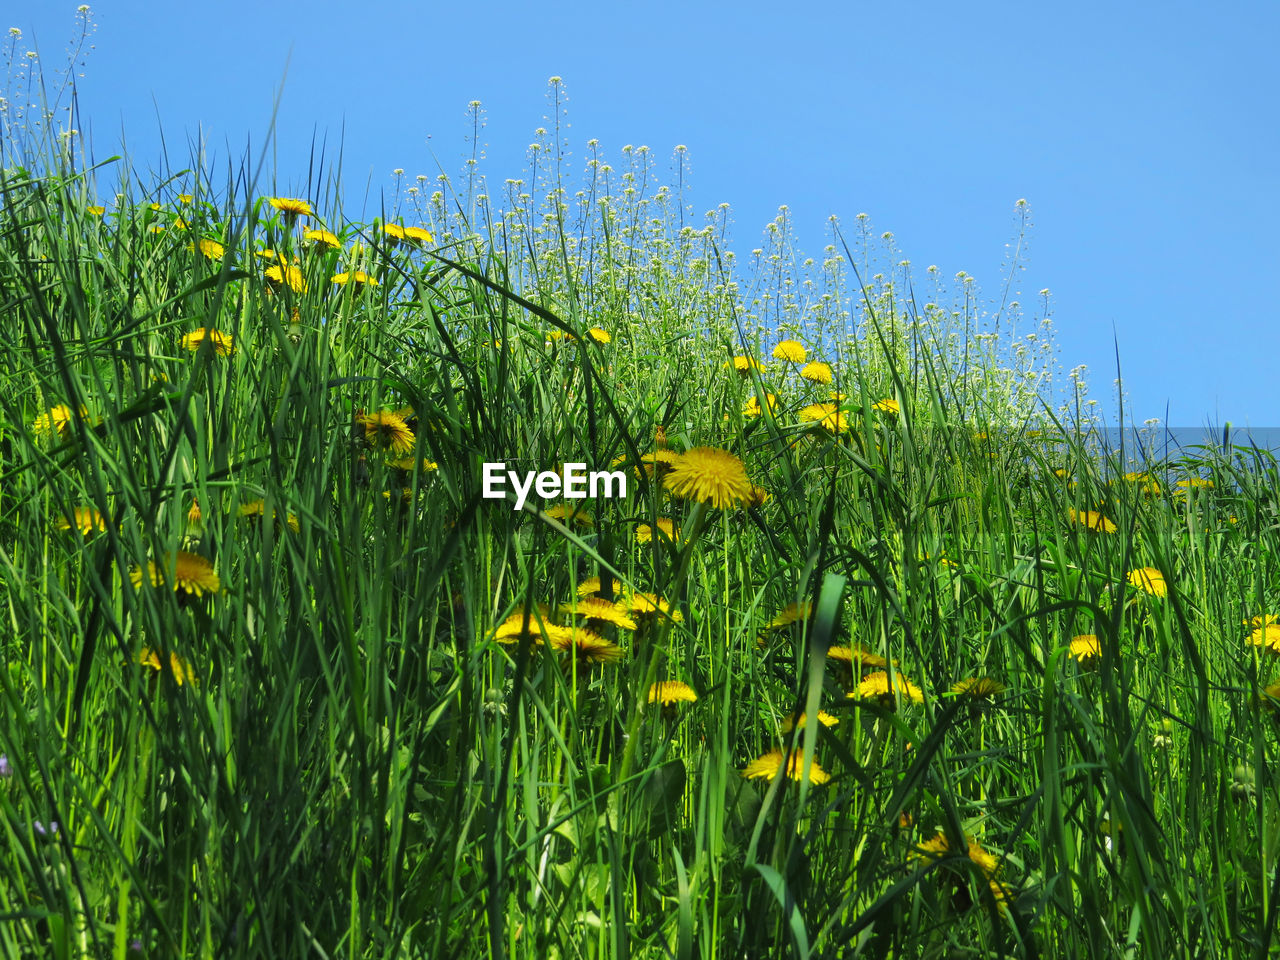 Grass Low Angle View Yellow And Green Beauty In Nature Blue Clear Sky Contrast Day Field Freshness Green Color Growth Land Nature Outdoors Taraxacum